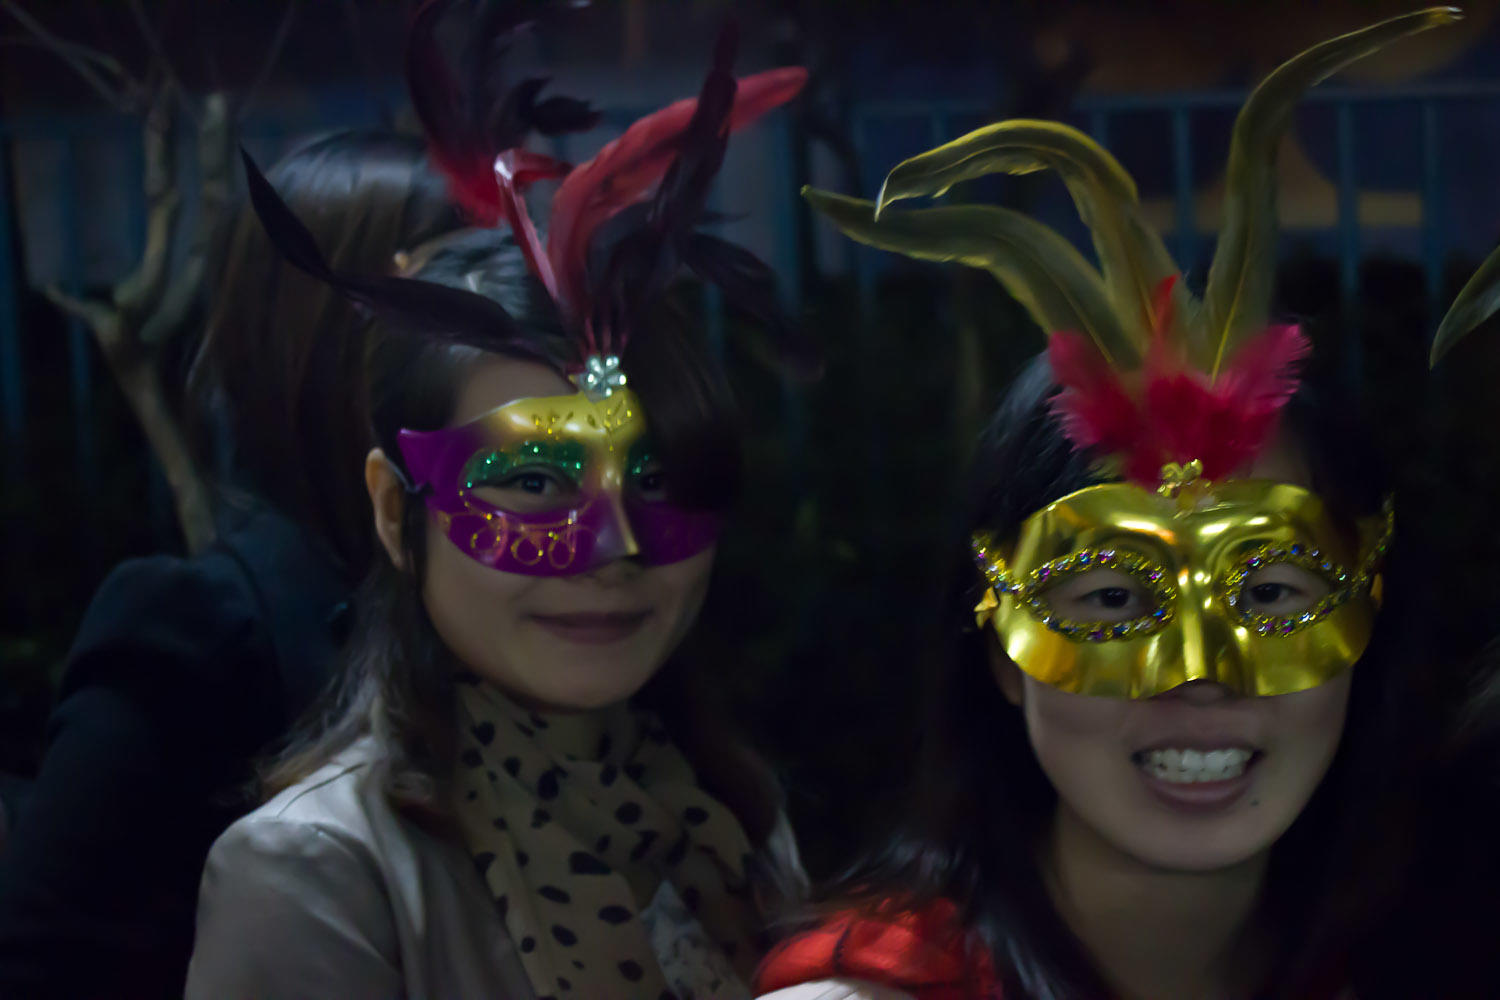 chinese girls in carnival masks for halloween